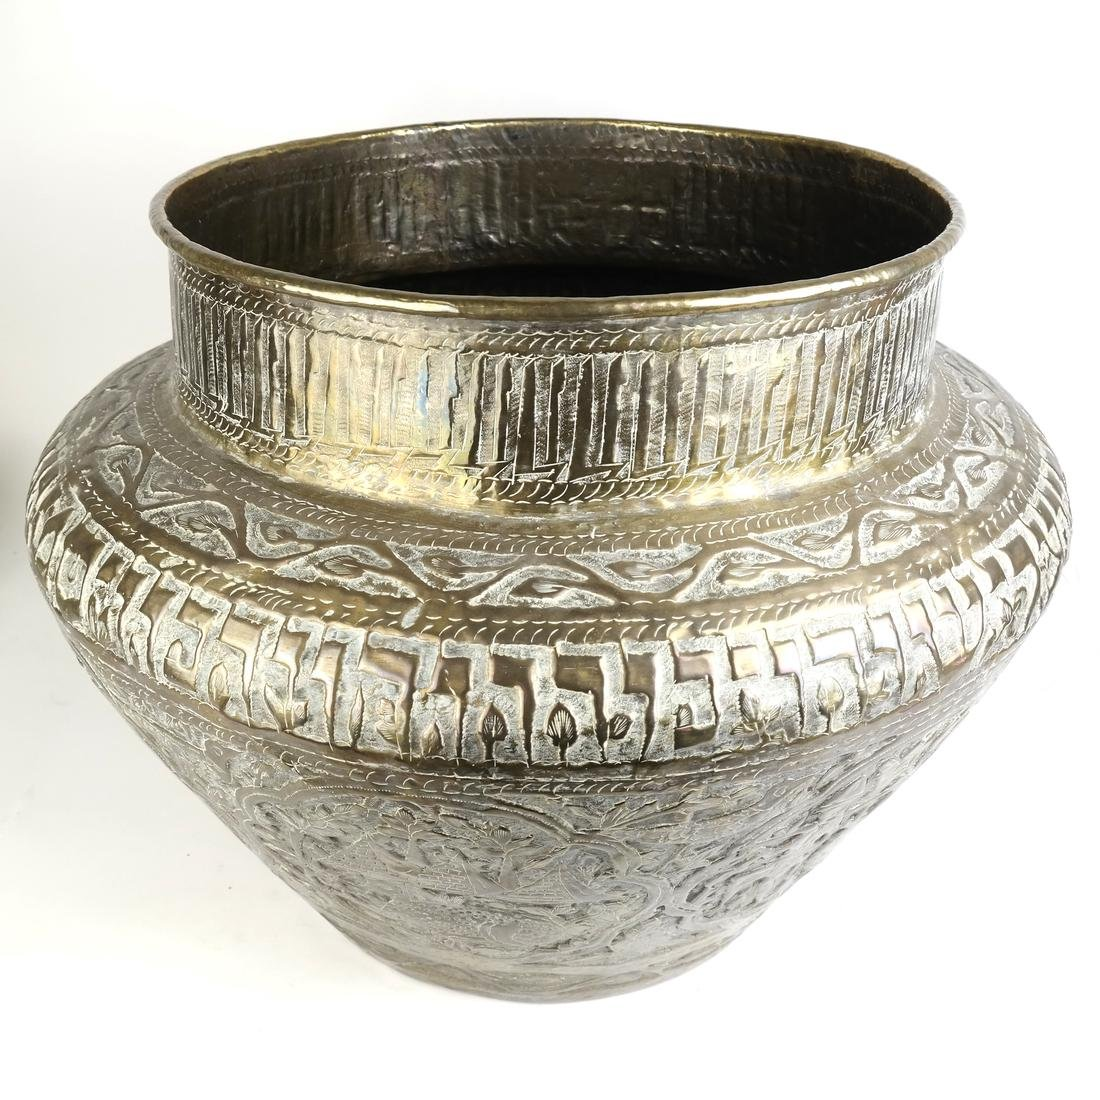 Judaica Brass Decorated Vessel